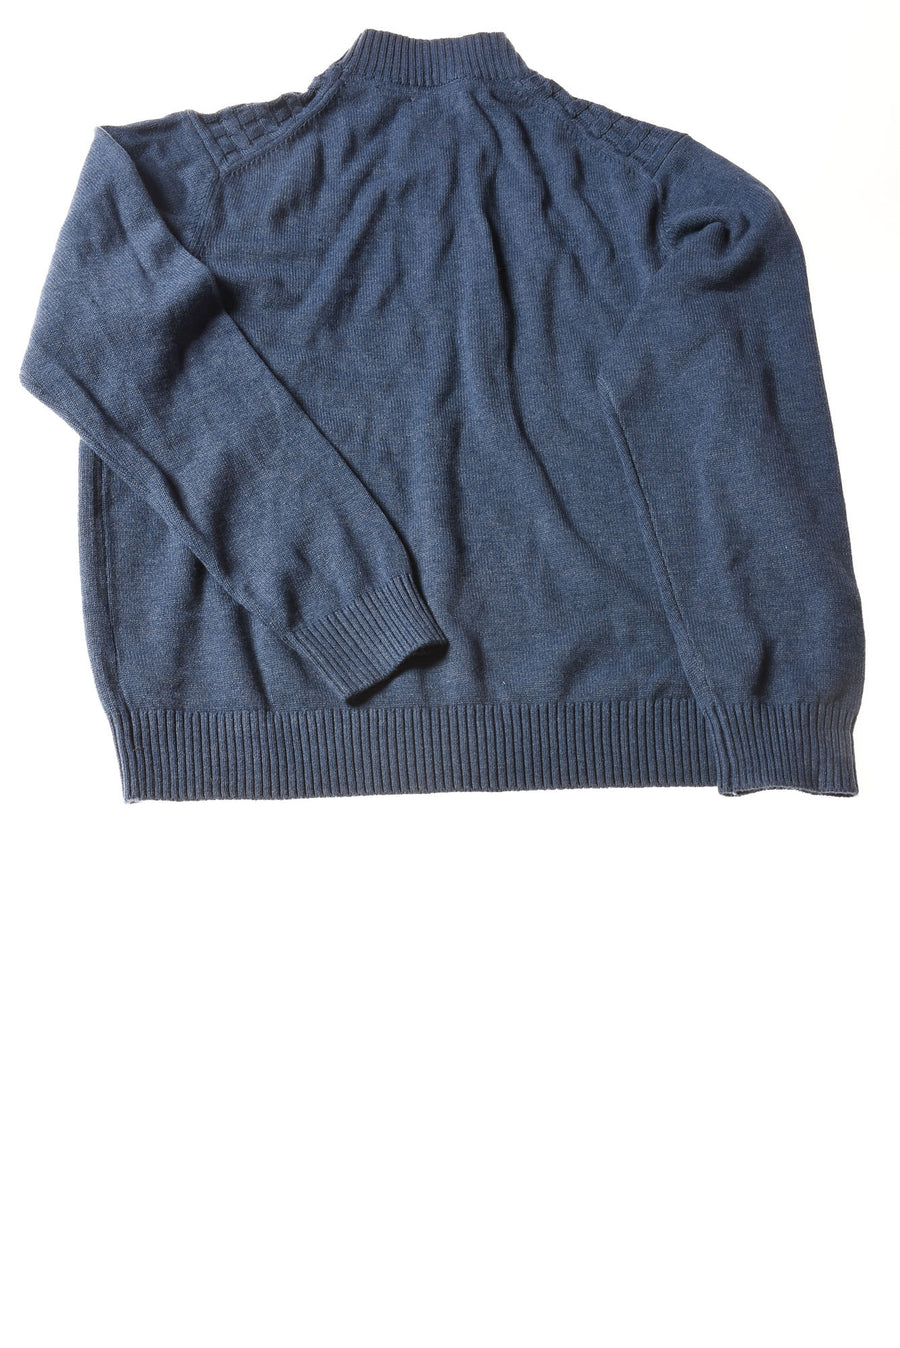 NEW IZOD Men's Sweater XX-Large Blue